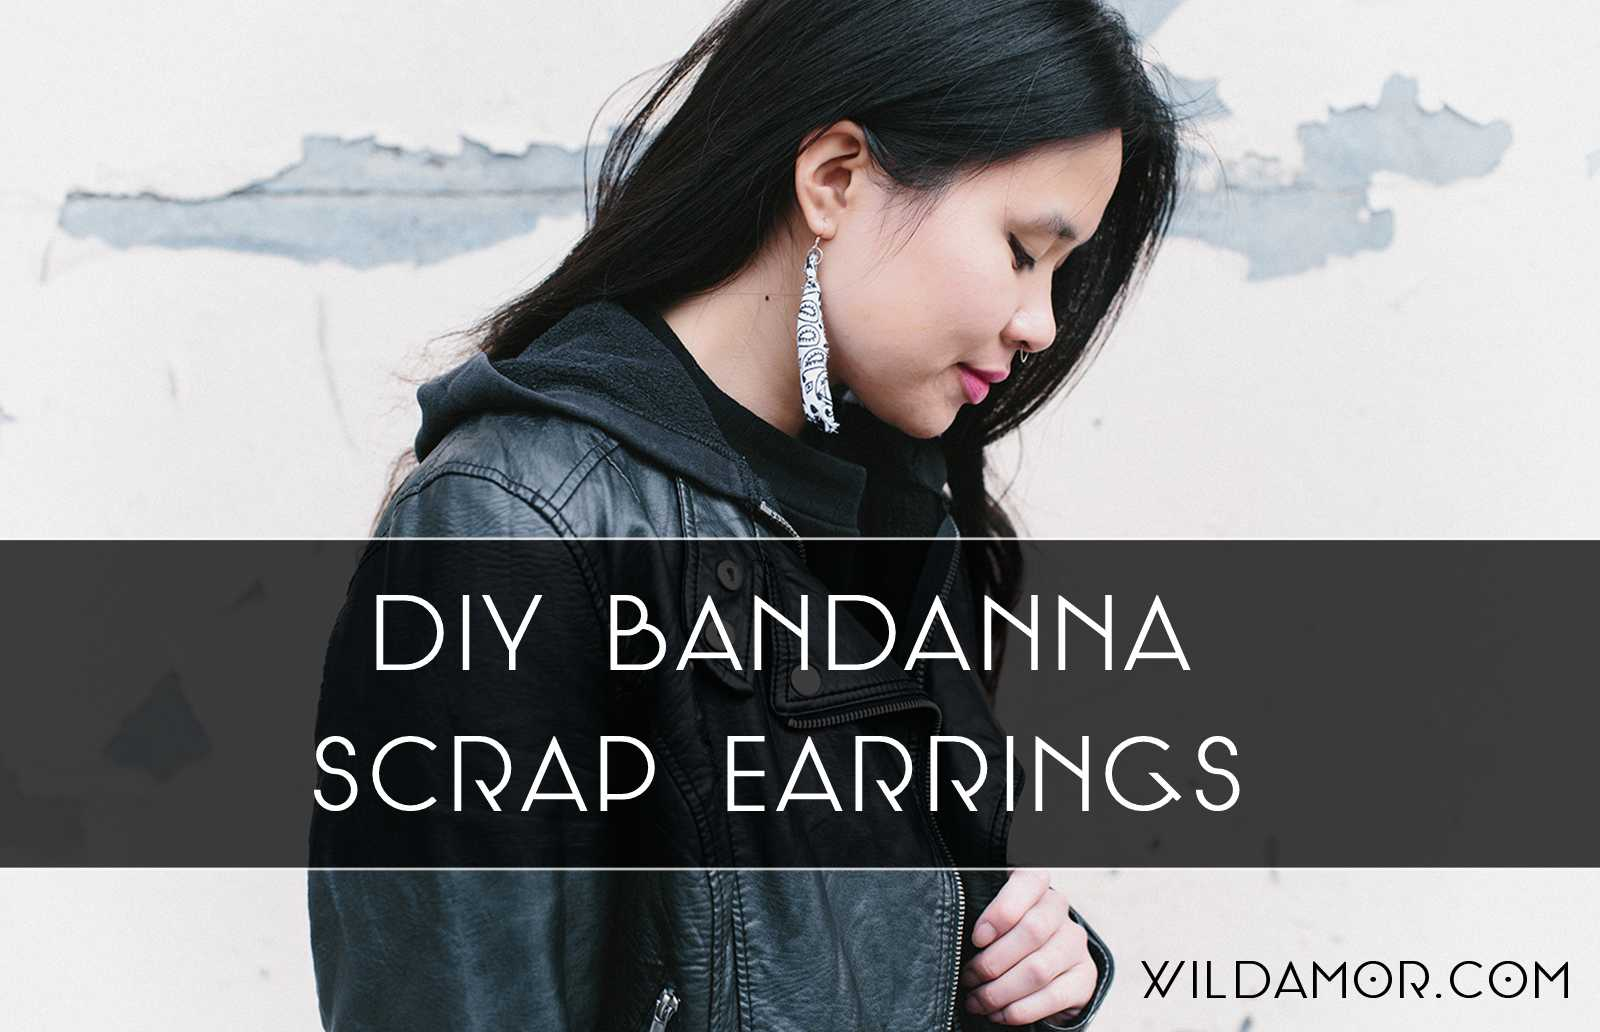 DIY Bandanna Scrap Earrings